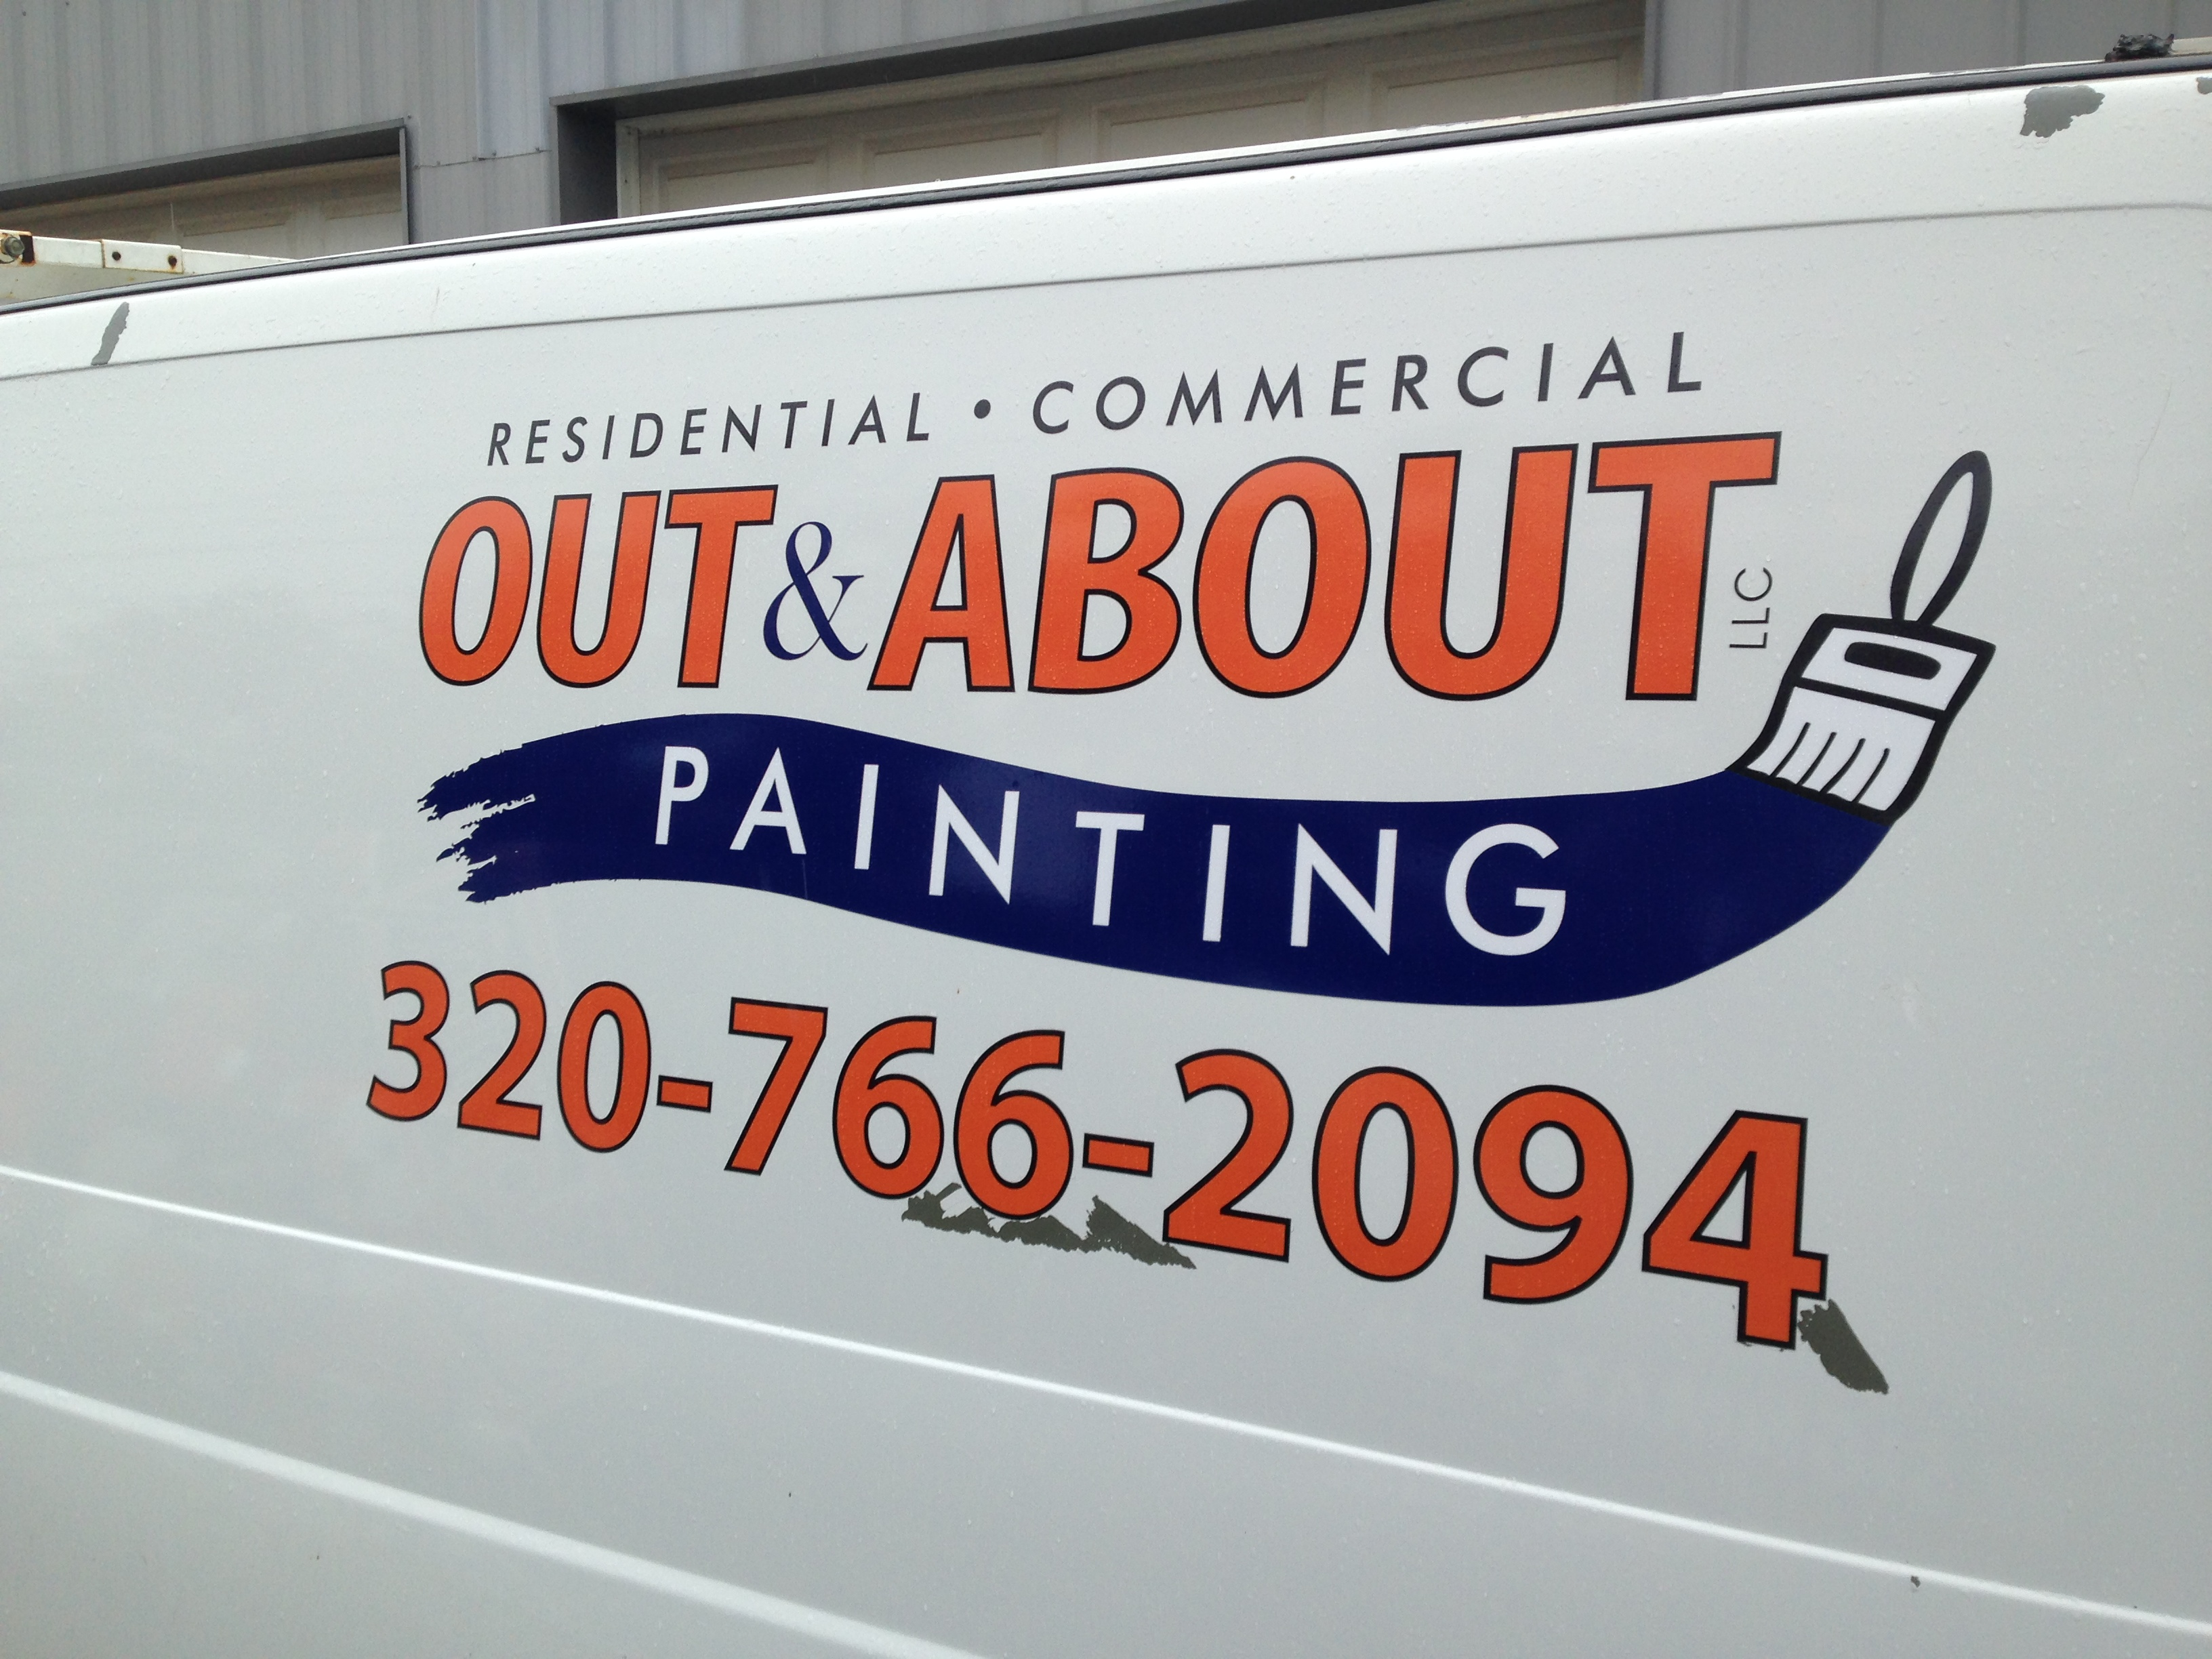 Custom Signage for Out & About Painting | Signmax.com